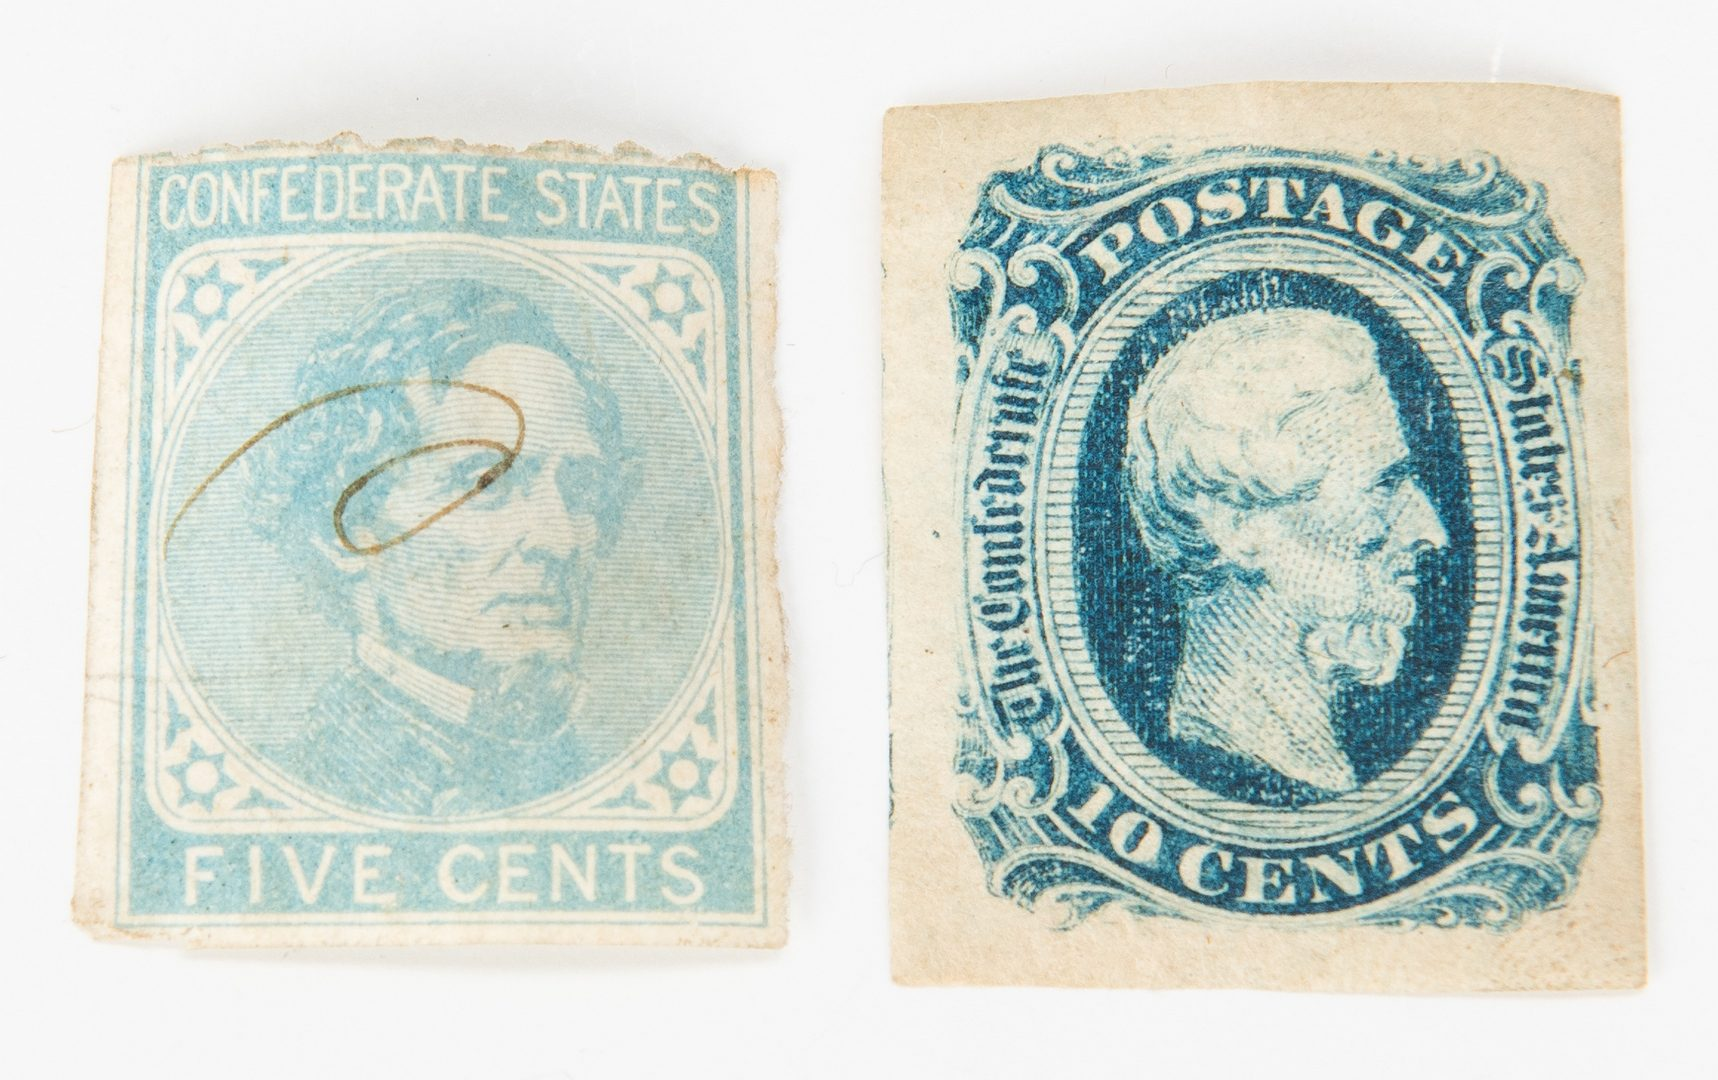 Lot 175: 15 Civil War items, incl. 1864 bond receipt, buttons